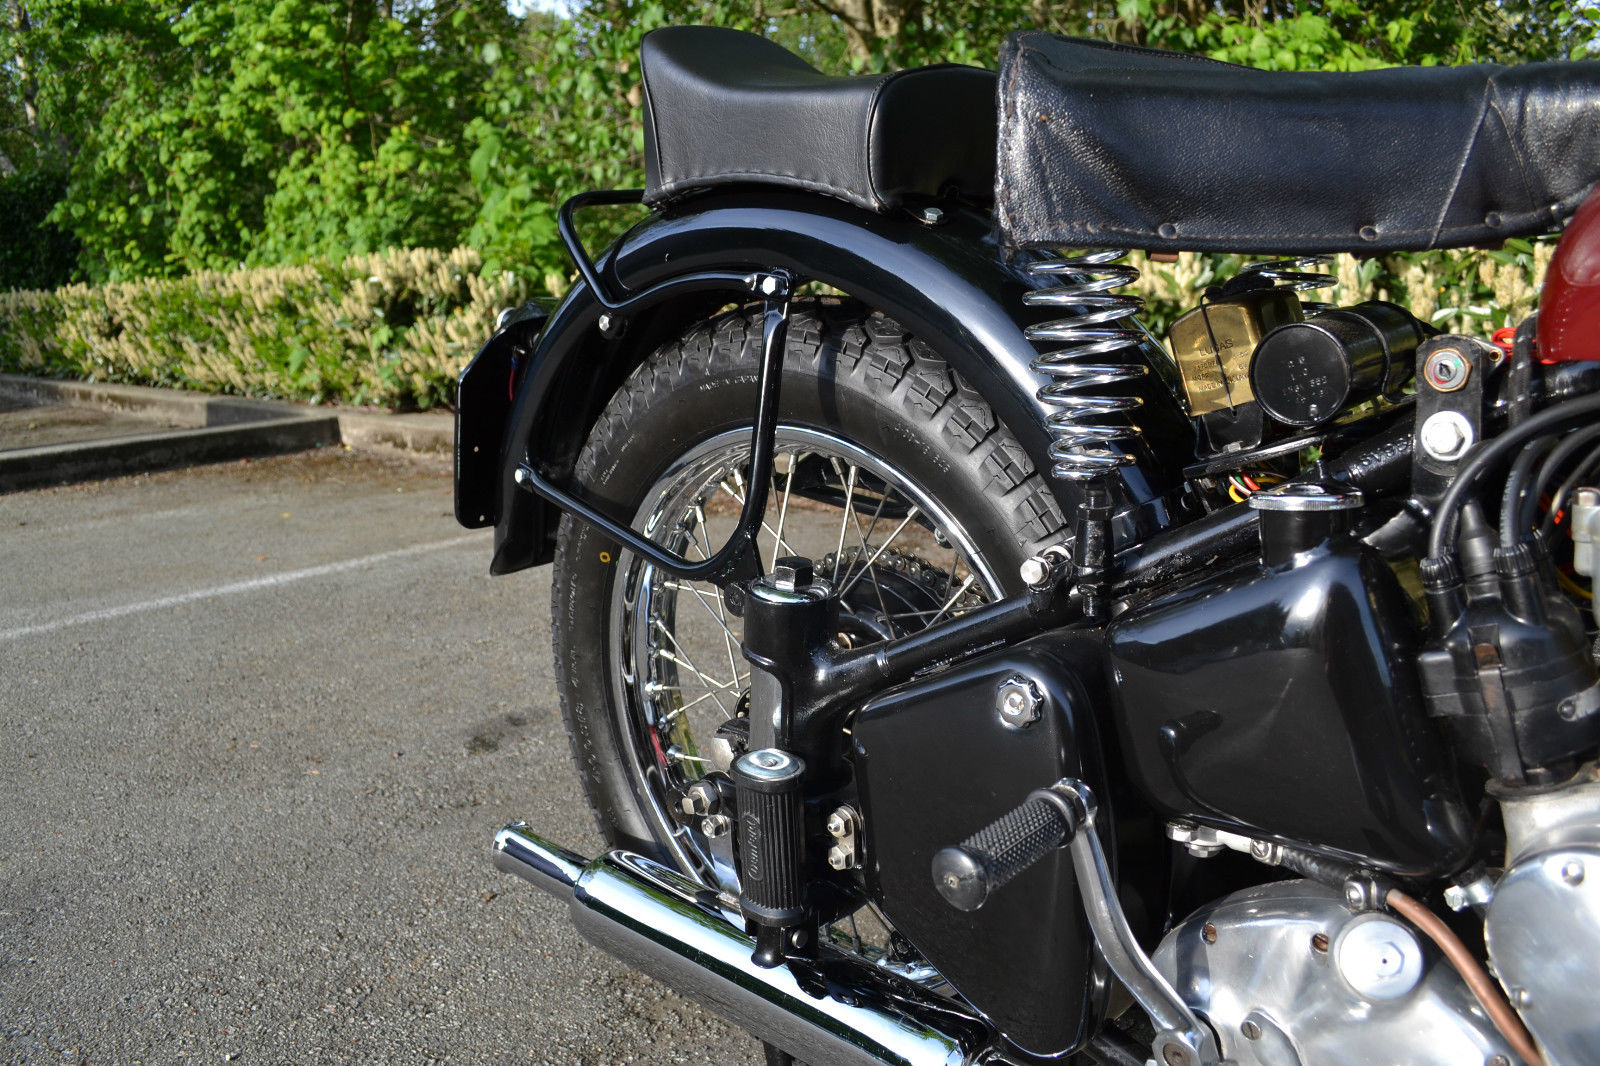 Ariel Square Four - 1952 - Saddles, Muffler, Kick Start and Gearbox.